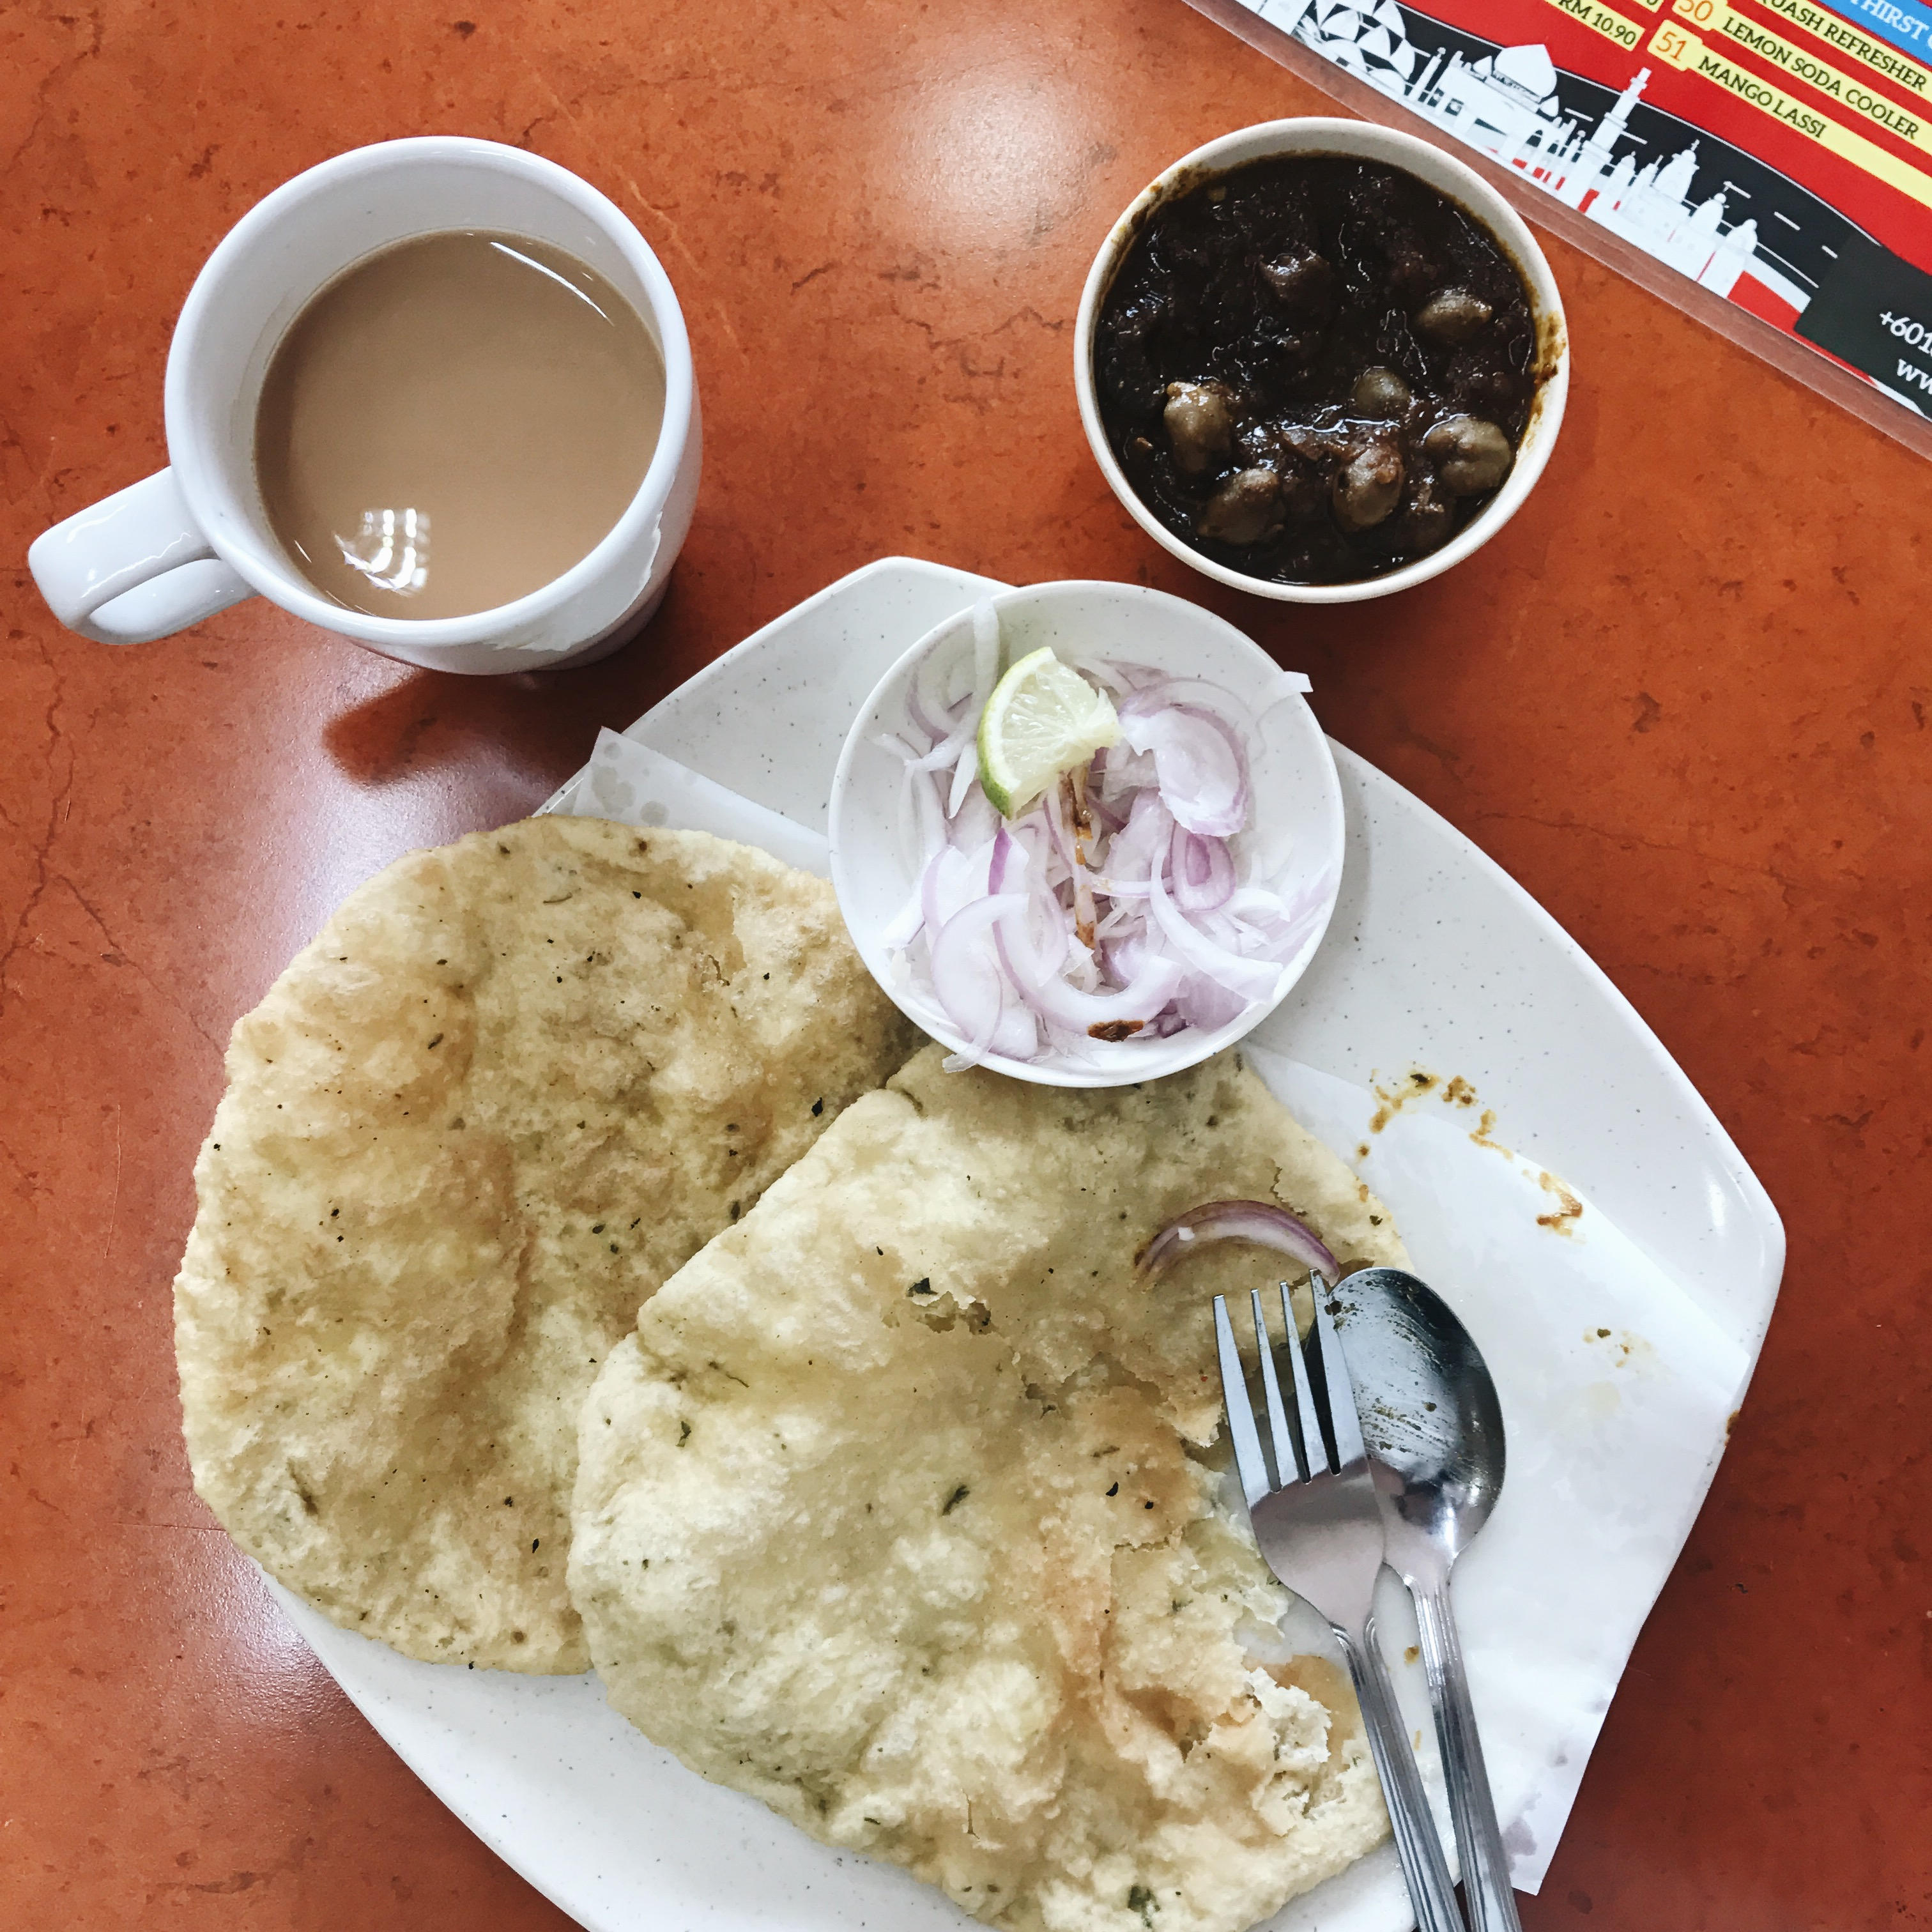 For Chole Bhature and Masala Tea